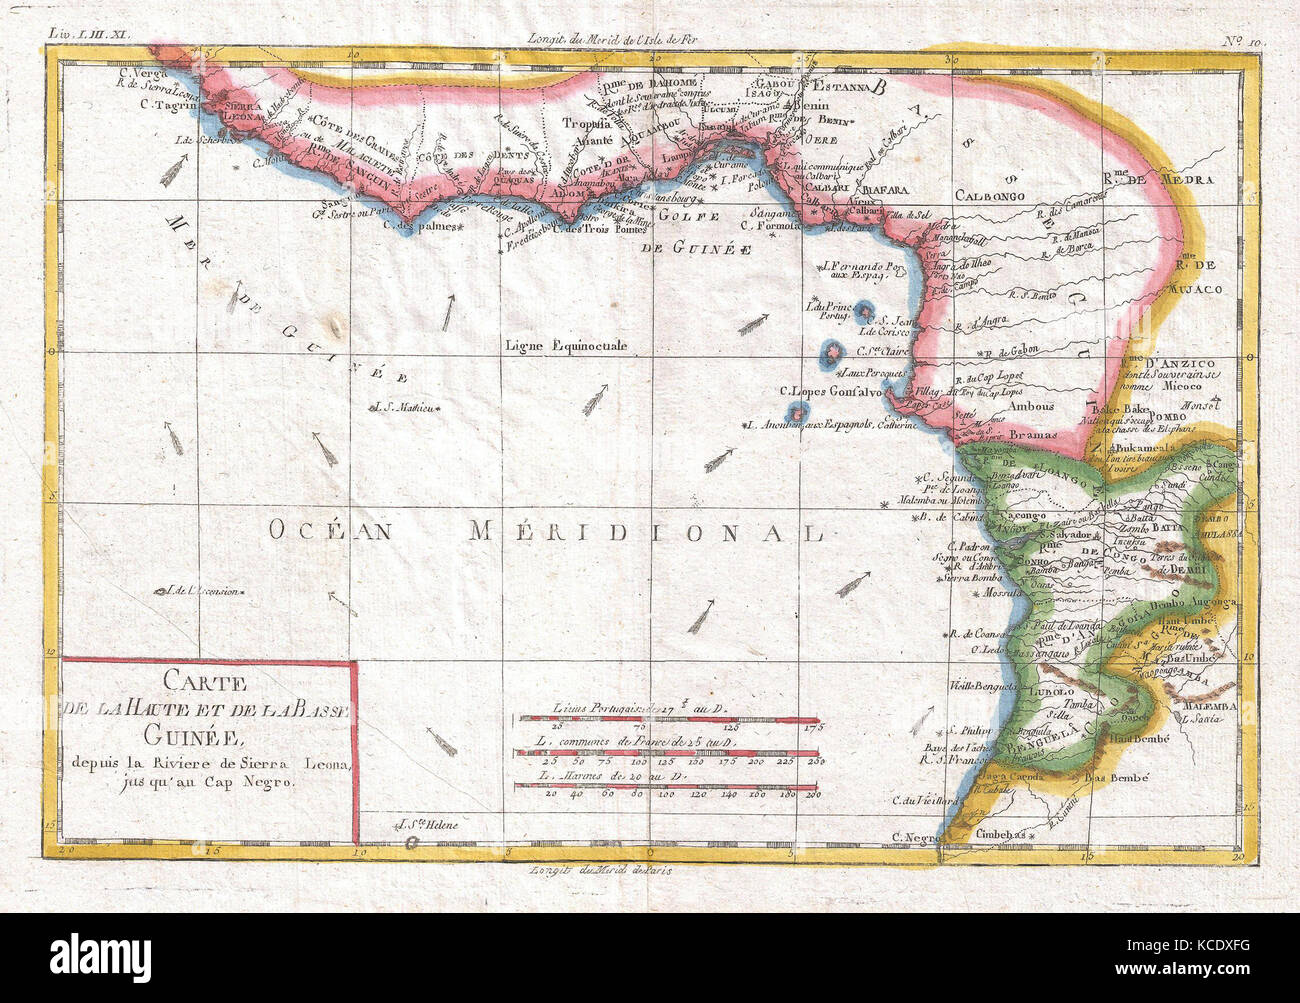 1780, Raynal and Bonne Map of Guinea, Rigobert Bonne 1727 – 1794 - Stock Image